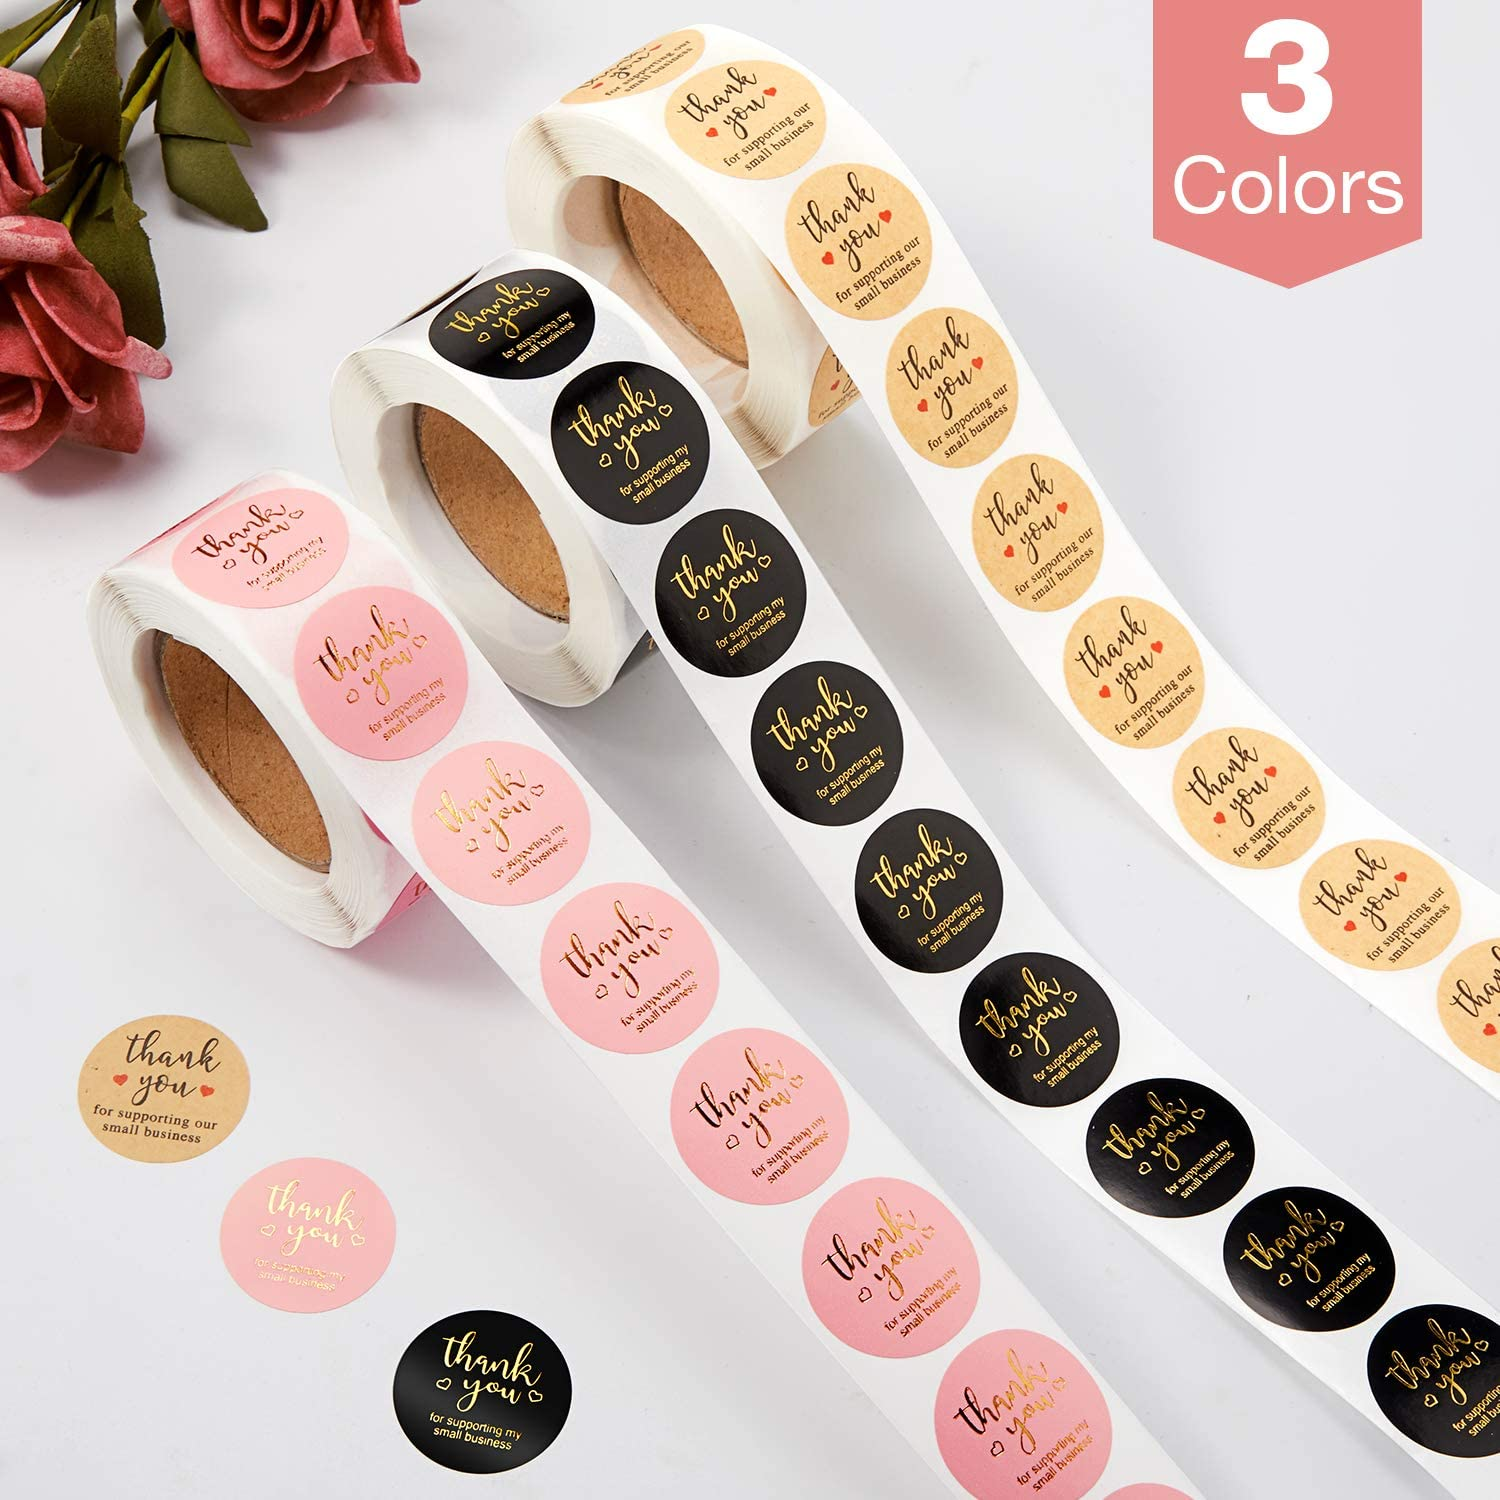 Thank You Stickers Labels Seals Thank You for Supporting My Small Business Stickers Roll Round Kraft Pink Black Labels For Shop